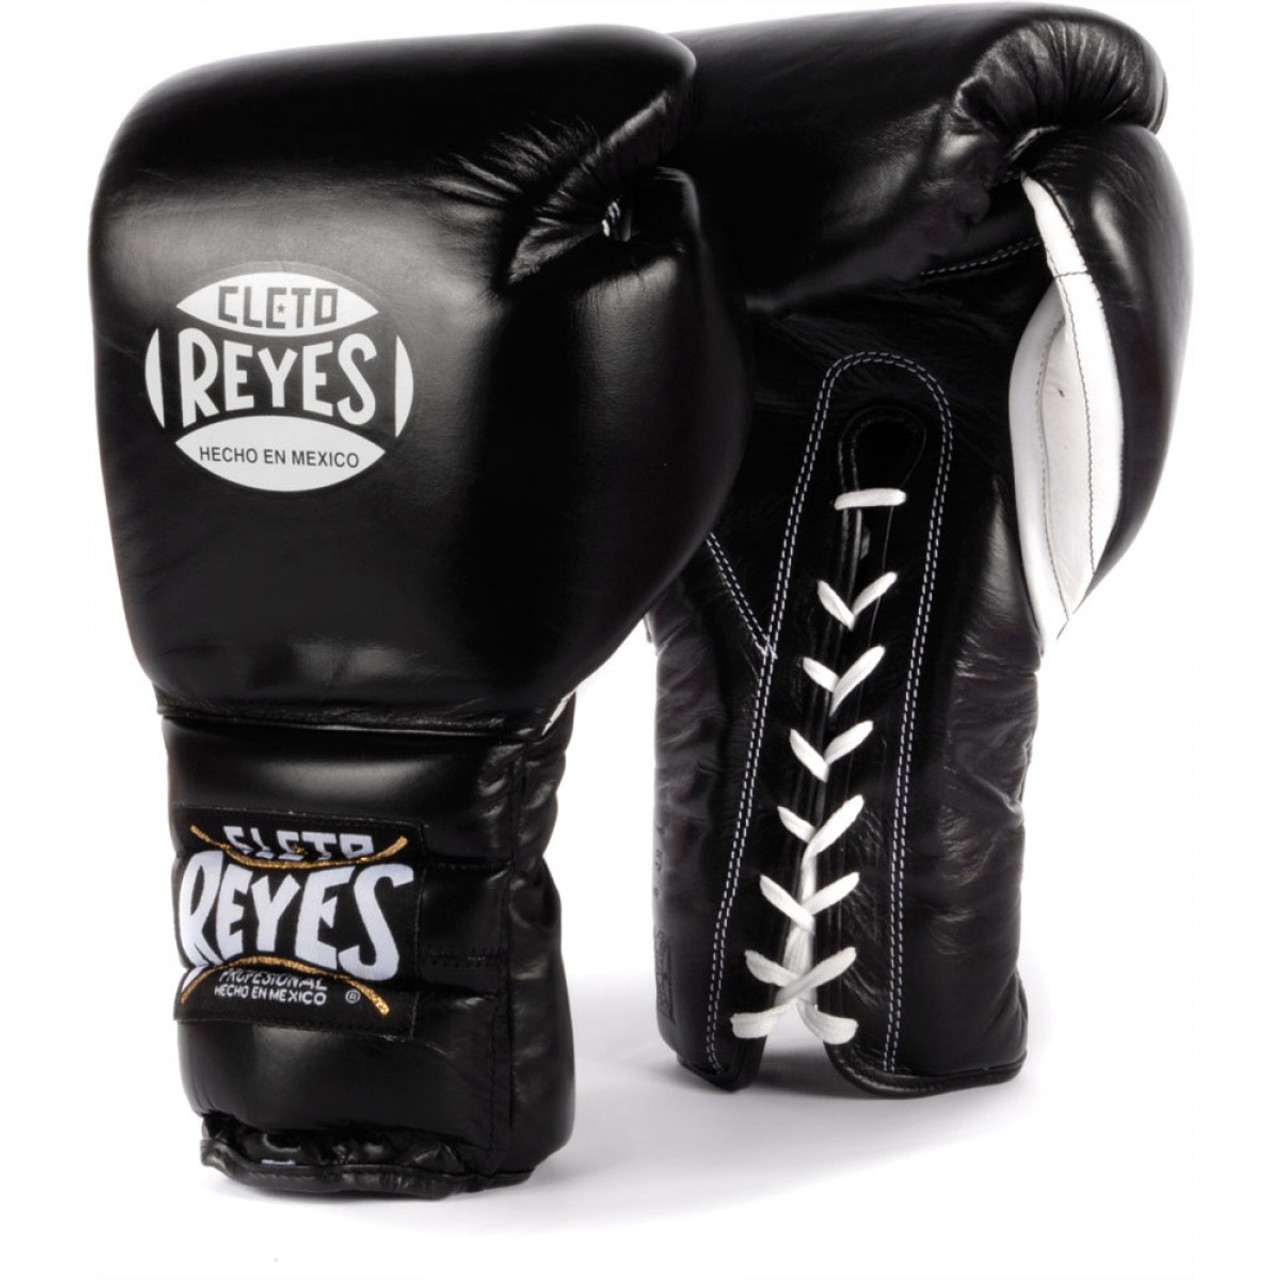 Cleto Reyes Traditional Lace Up Training Boxing Gloves Black